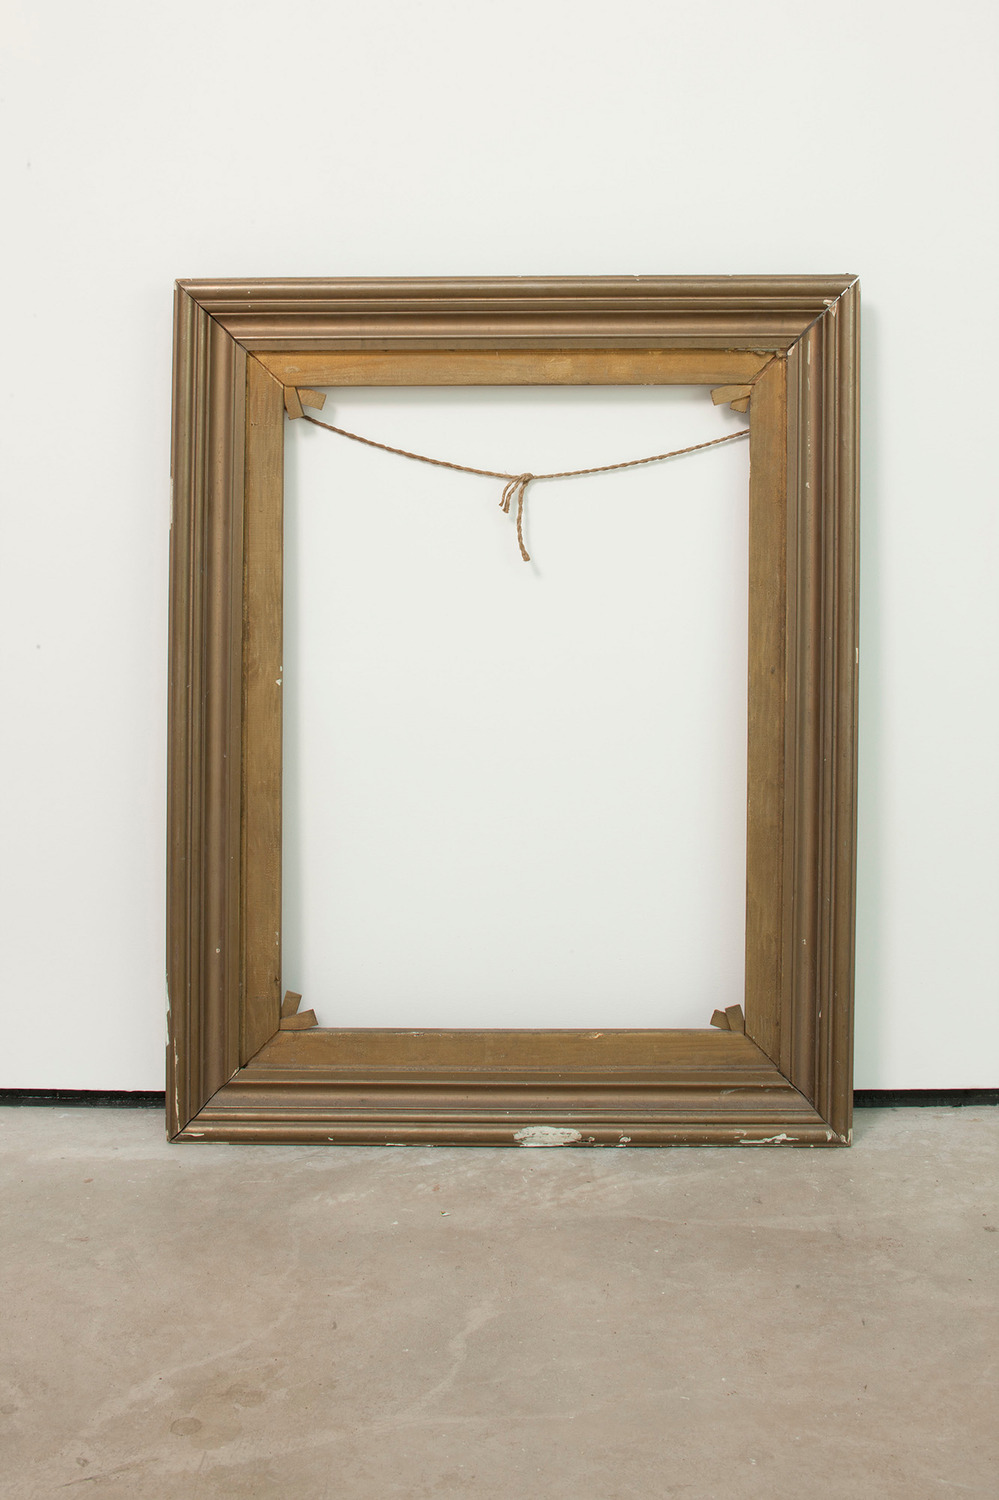 Resting Piece, 2011, Found object, 95 x 75 x 5 cm